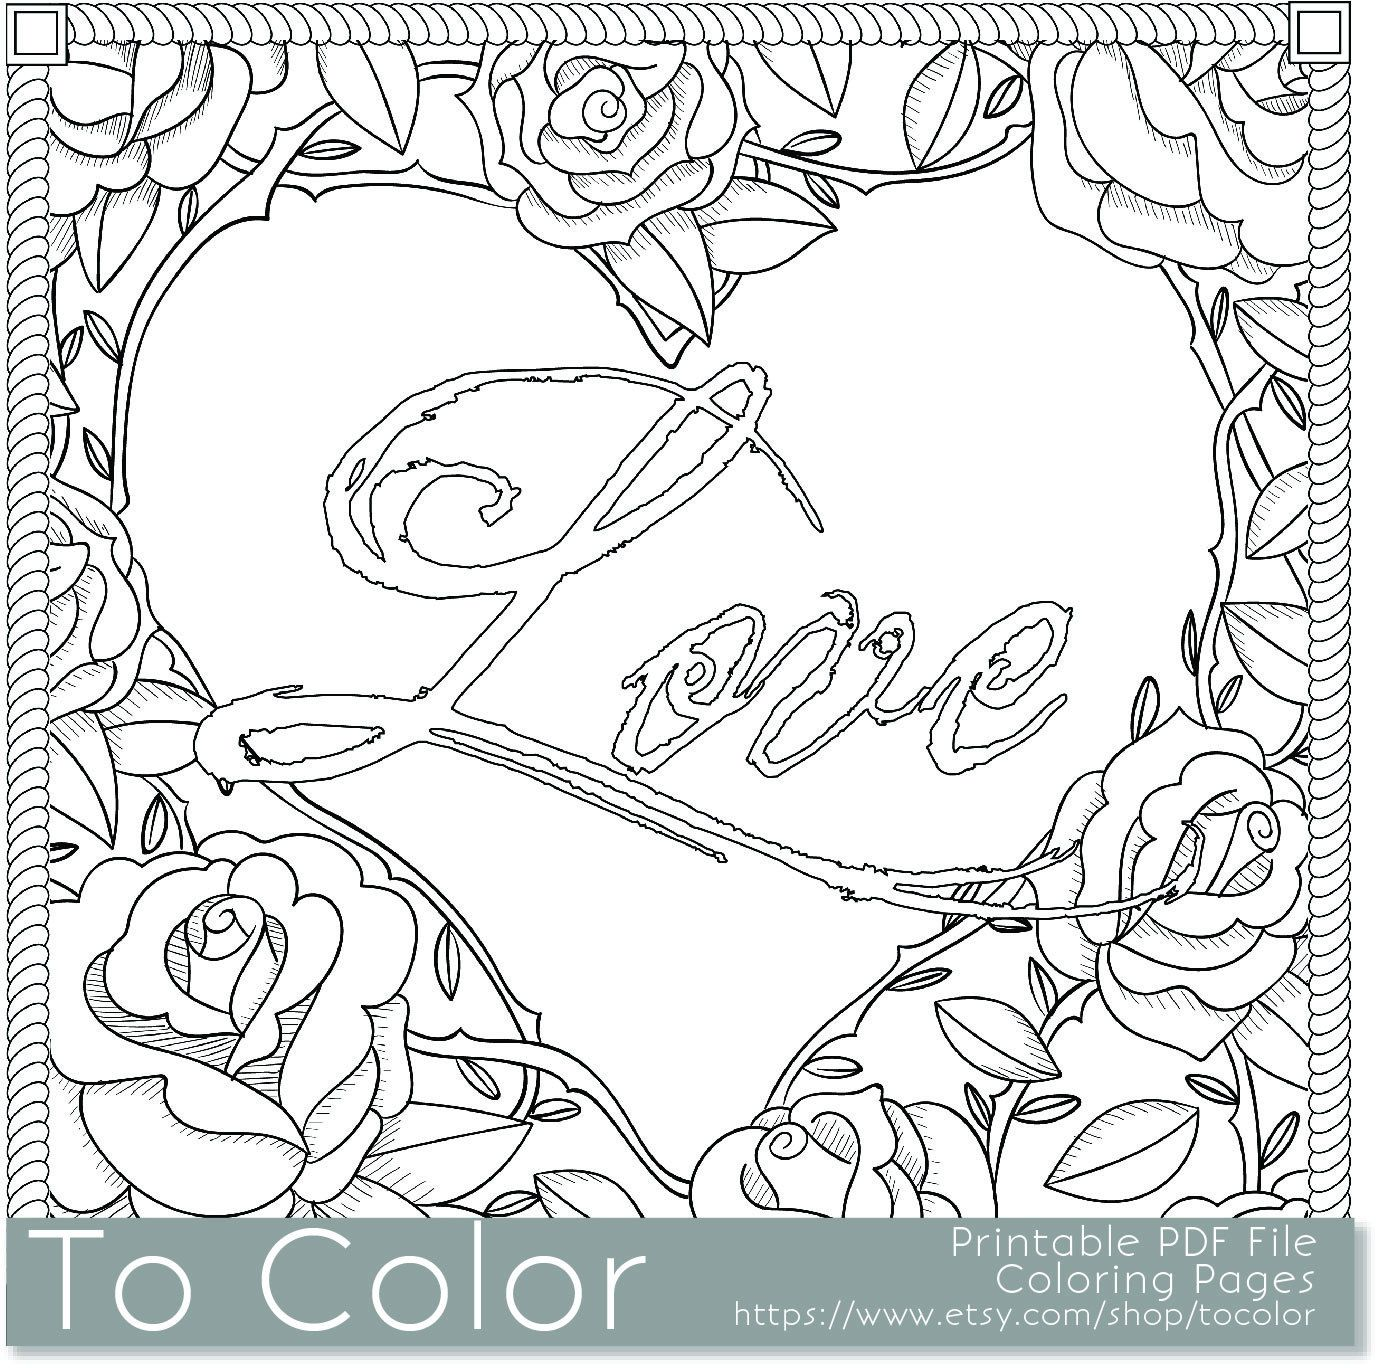 Printable Rose Frame Love Coloring Page For Adults PDF By ToColorADULT COLORING BOOK PAGESMore Pins Like This At FOSTERGINGER Pinterest